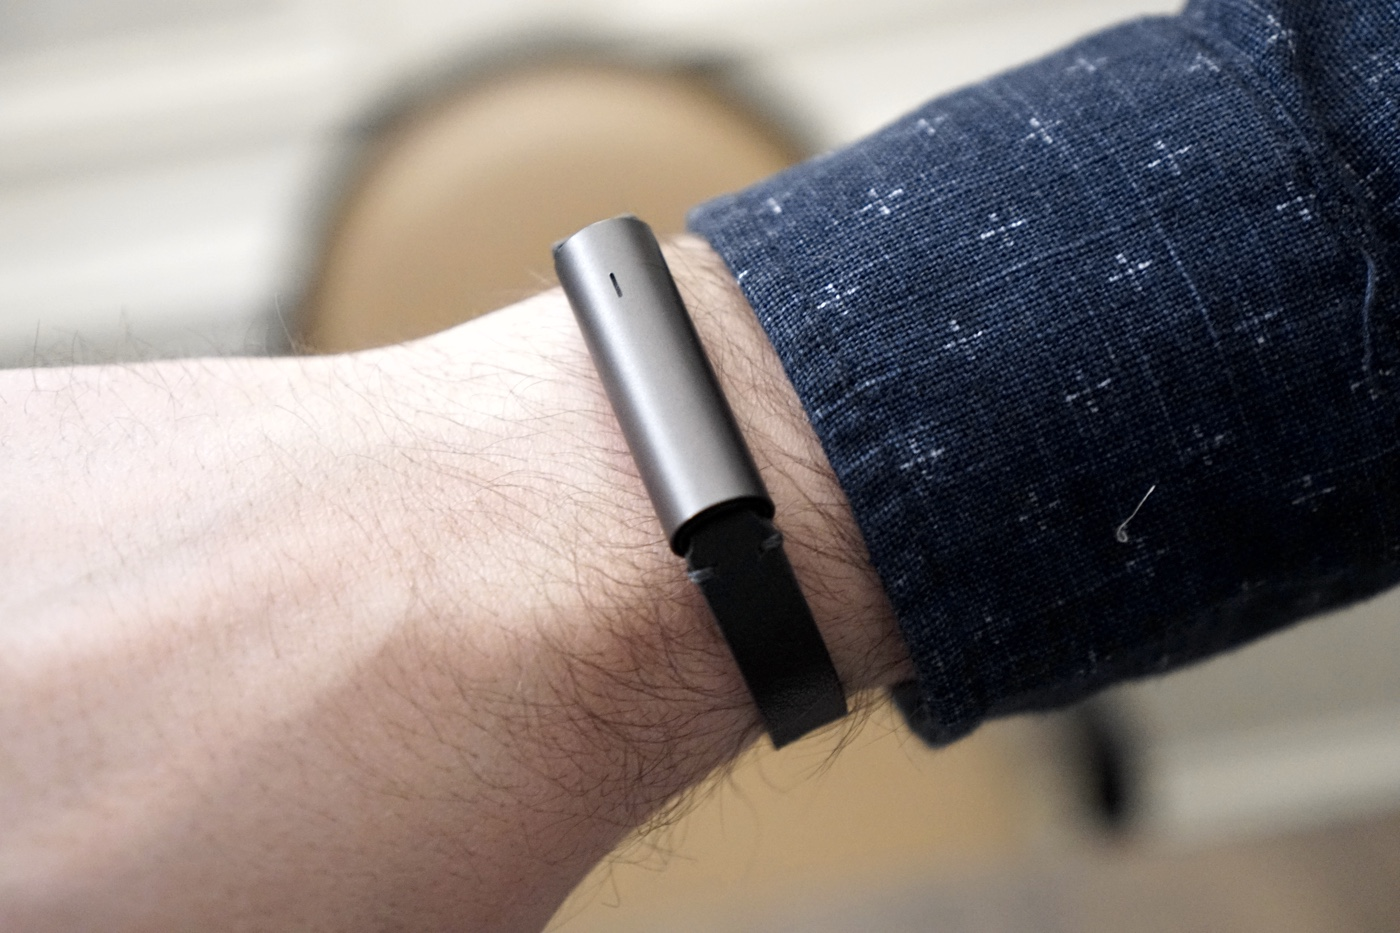 Misfit Ray: A stylish wearable that compliments your watch